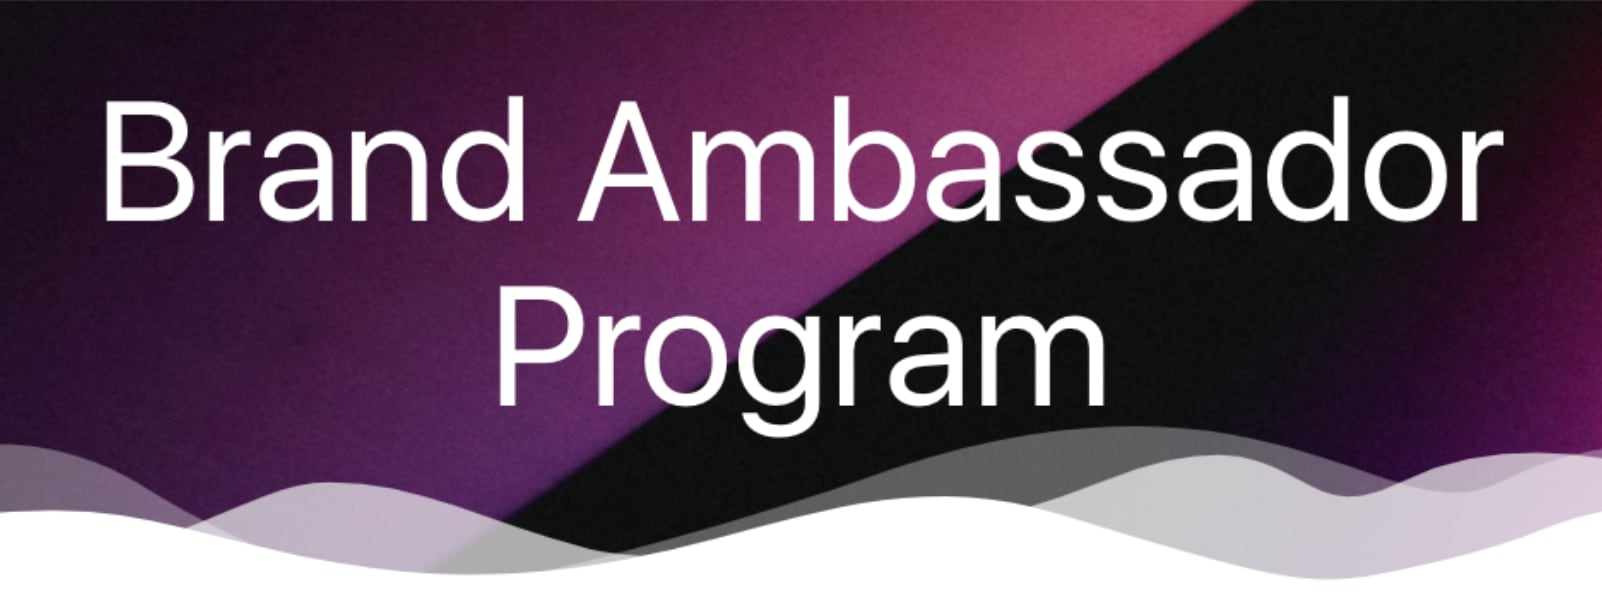 Brand Ambassador Program